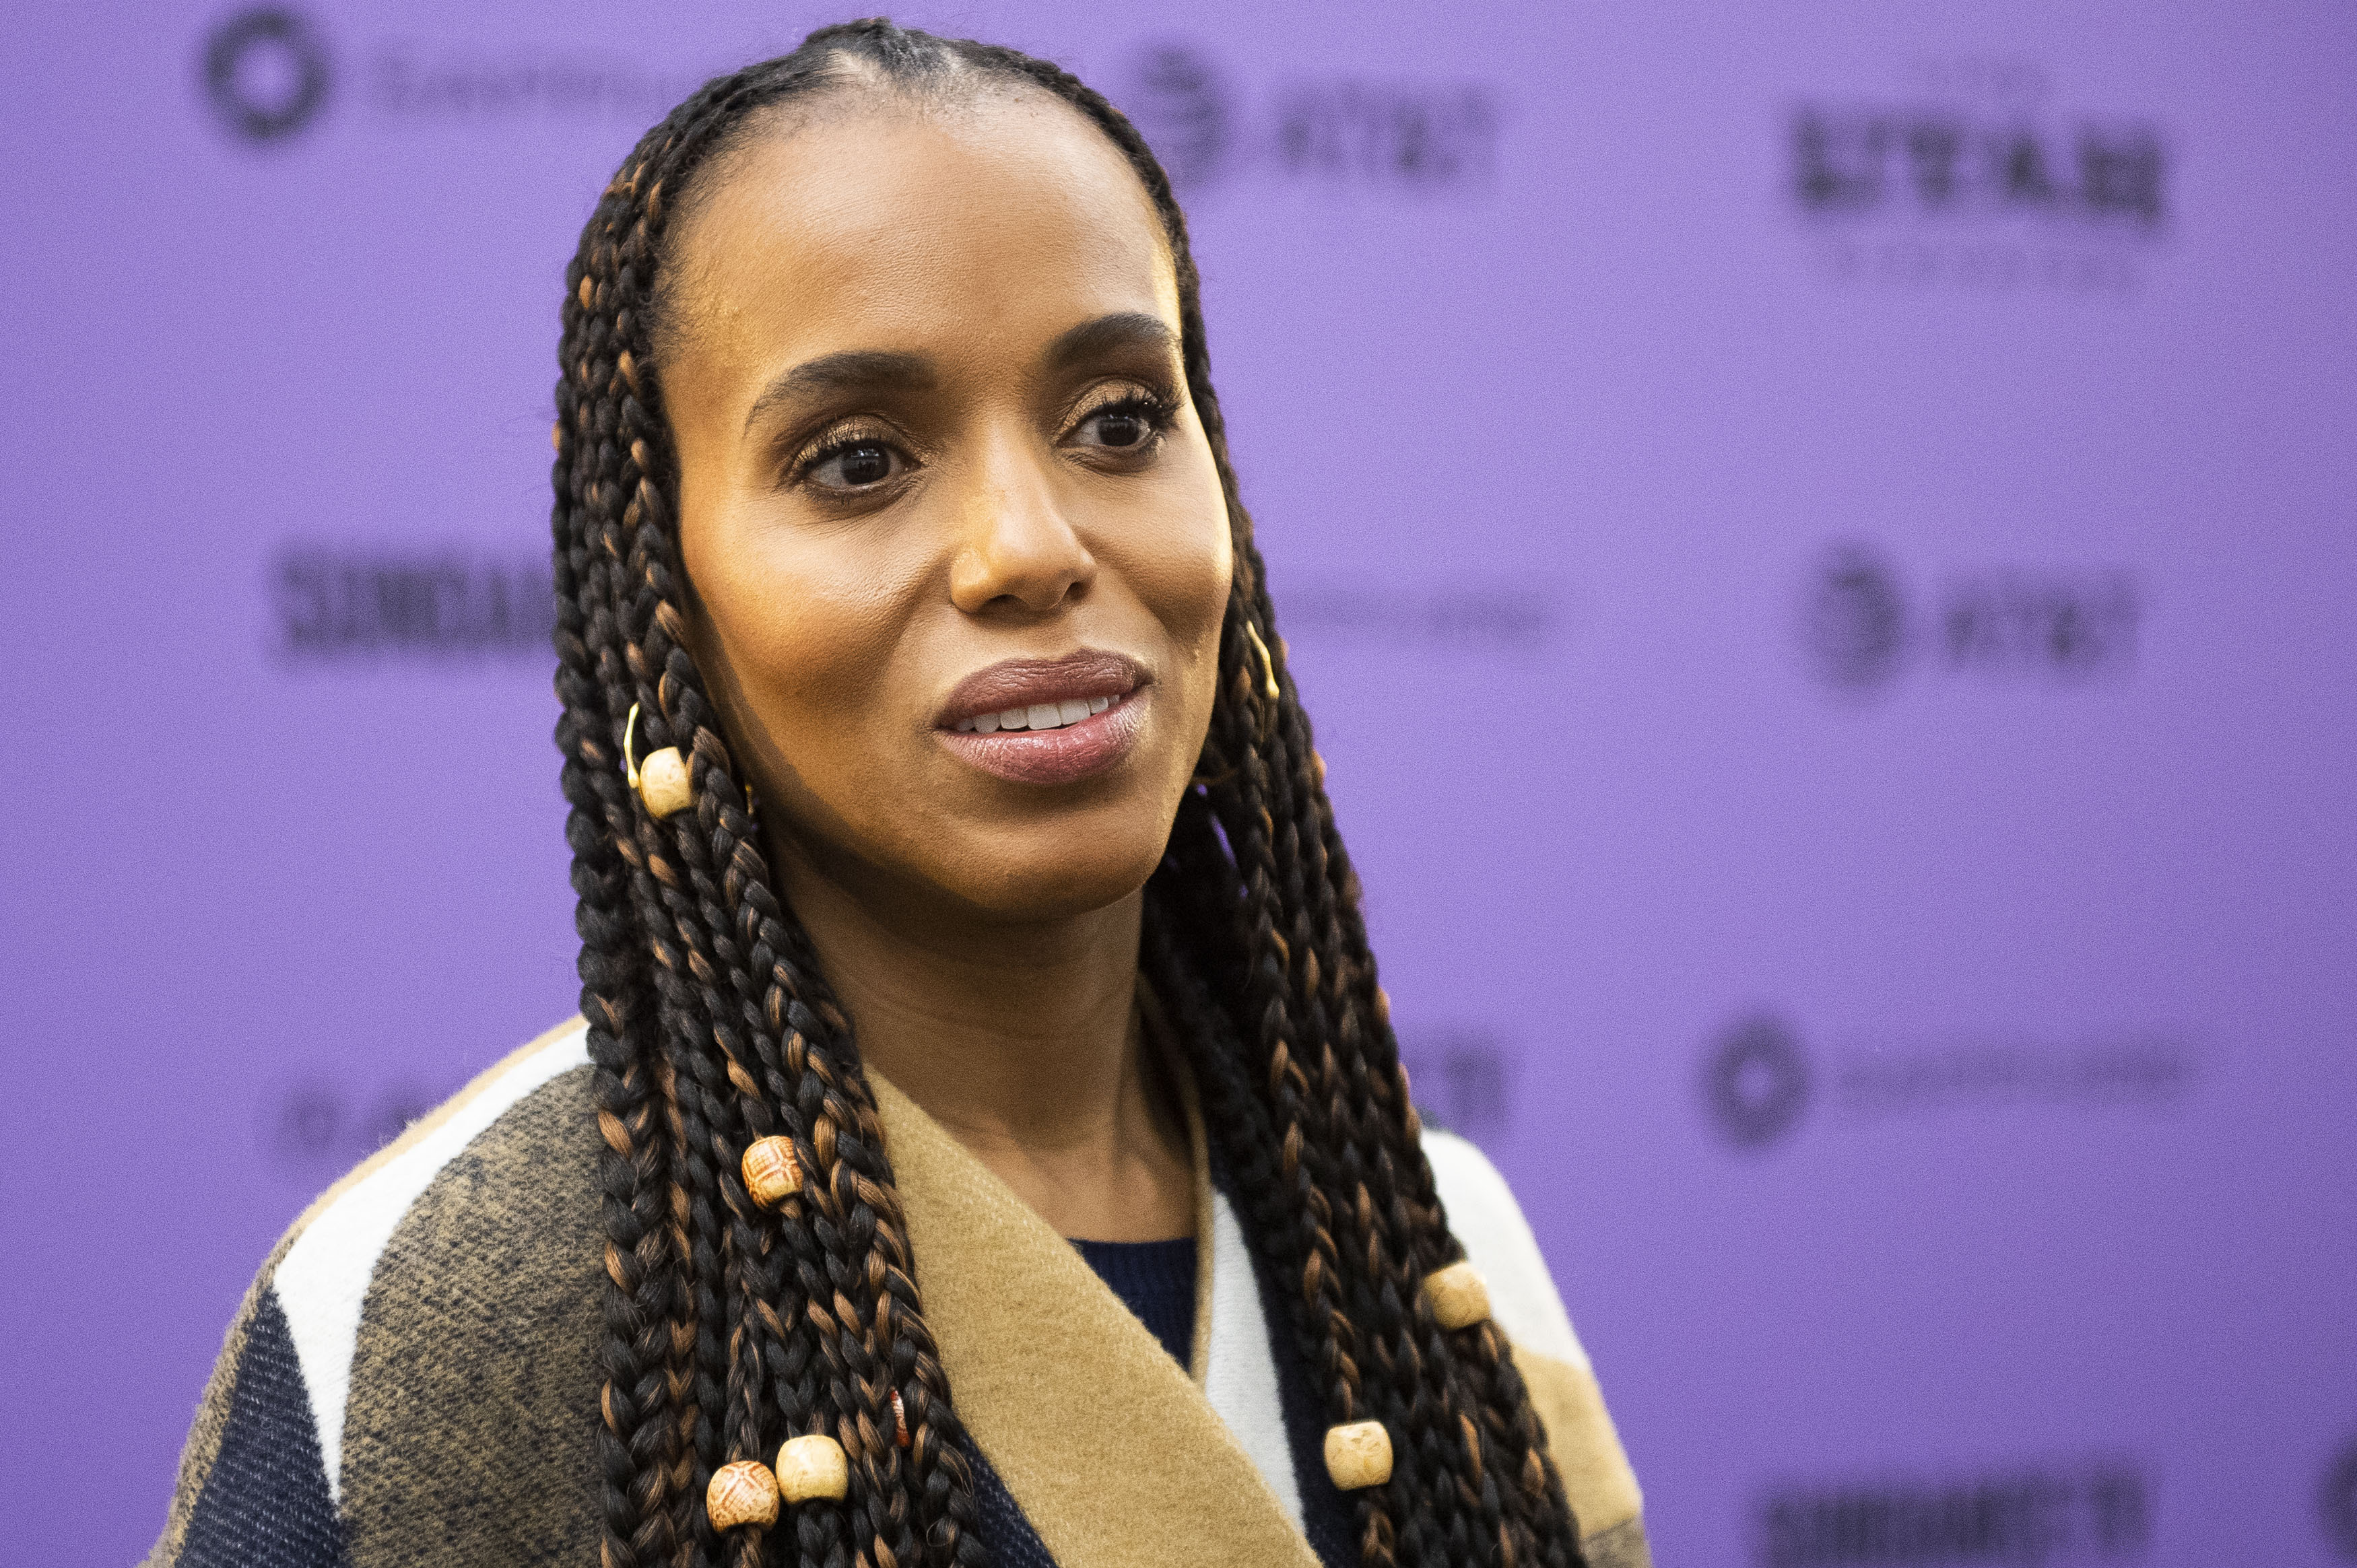 """Producer Kerry Washington attends the premiere of """"The Fight"""" at the MARC Theater during the 2020 Sundance Film Festival on Friday, Jan. 24, 2020, in Park City, Utah. (Photo by Arthur Mola/Invision/AP)"""